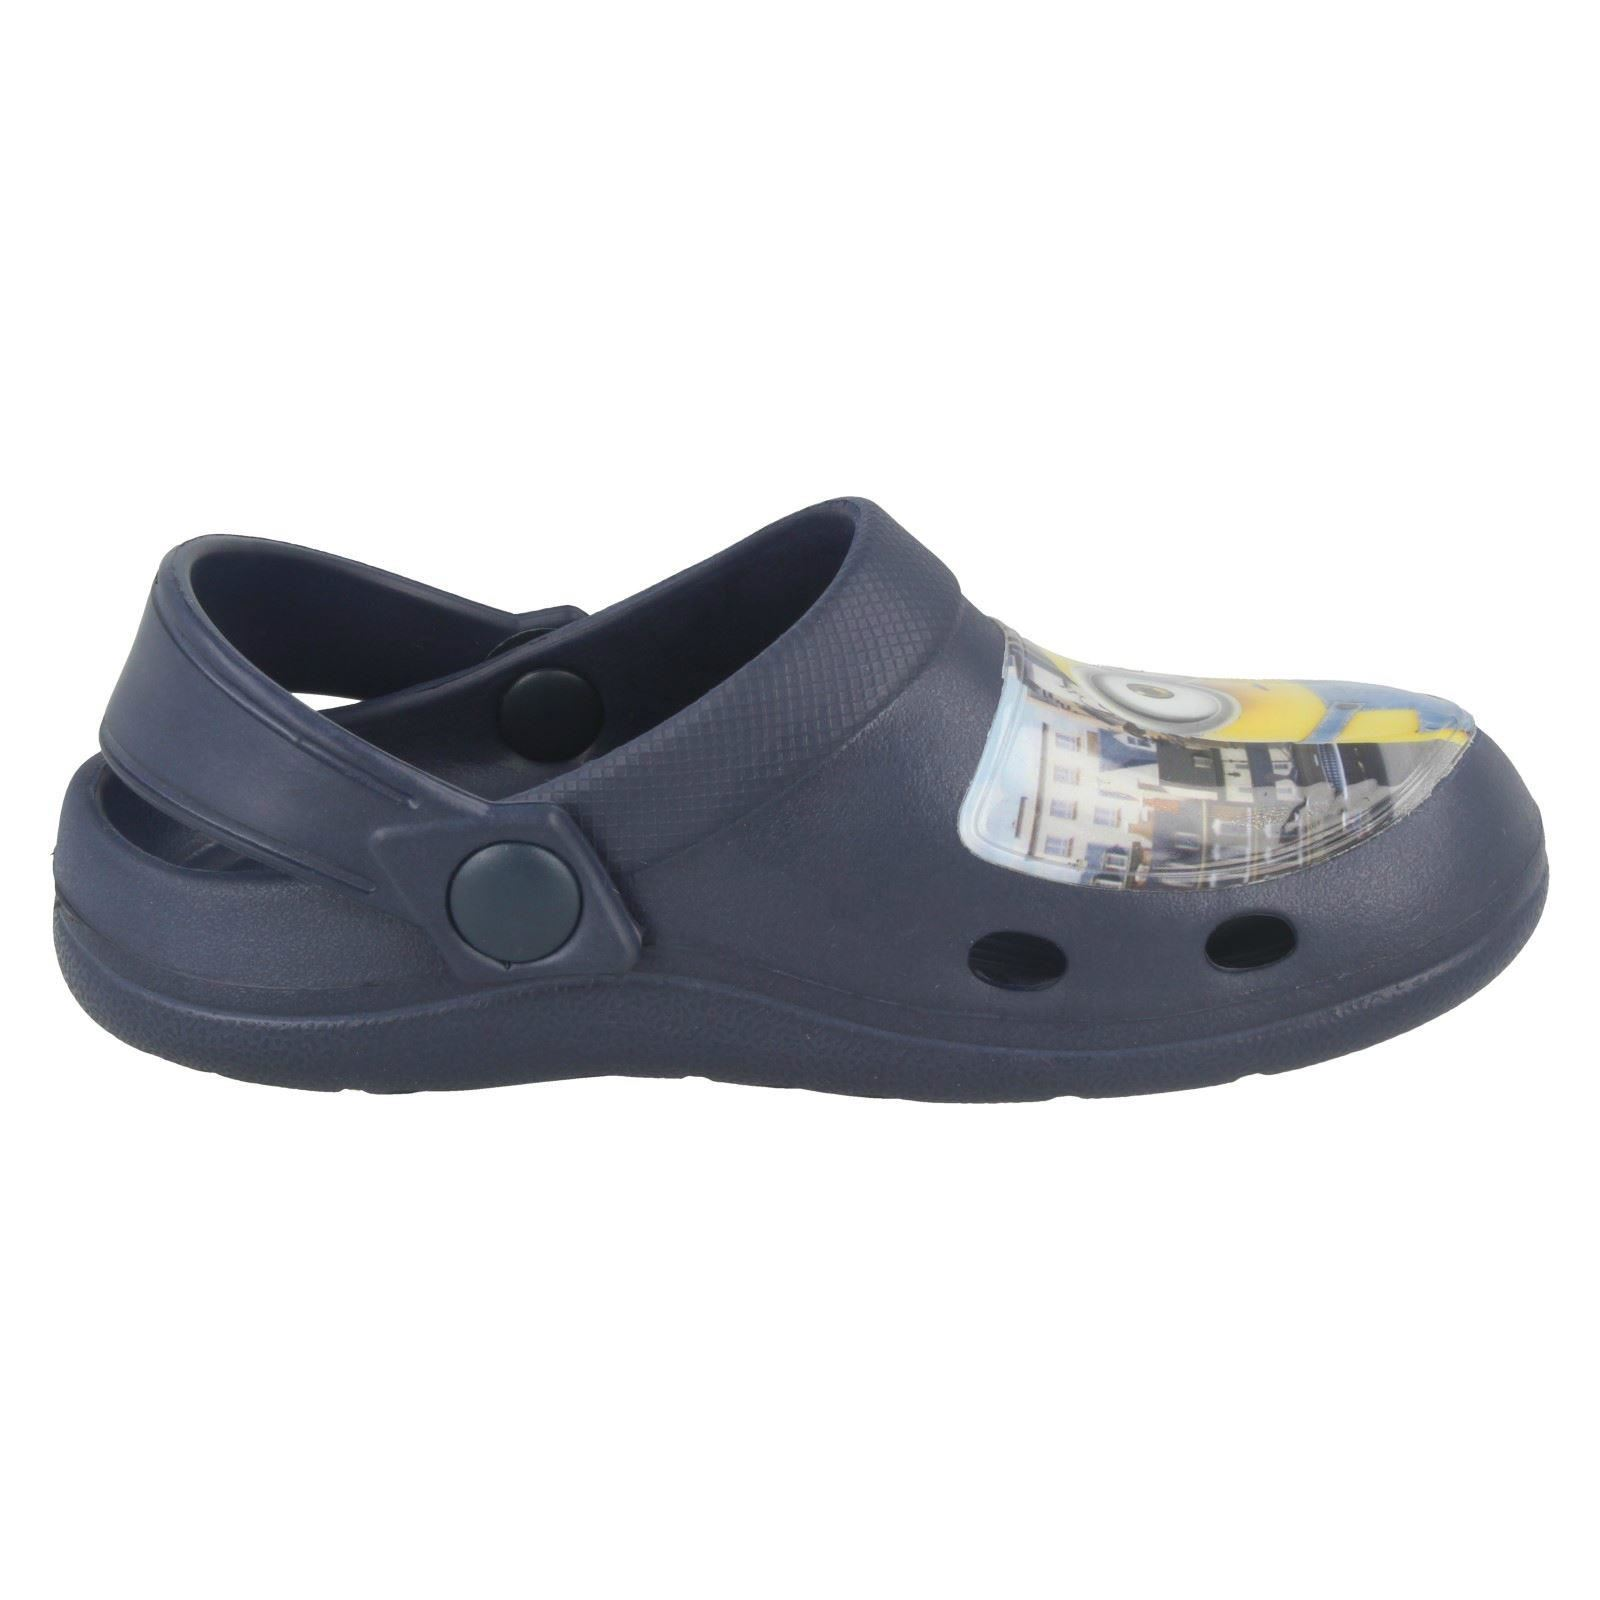 Jungen Minions Clogs 'Whymper'